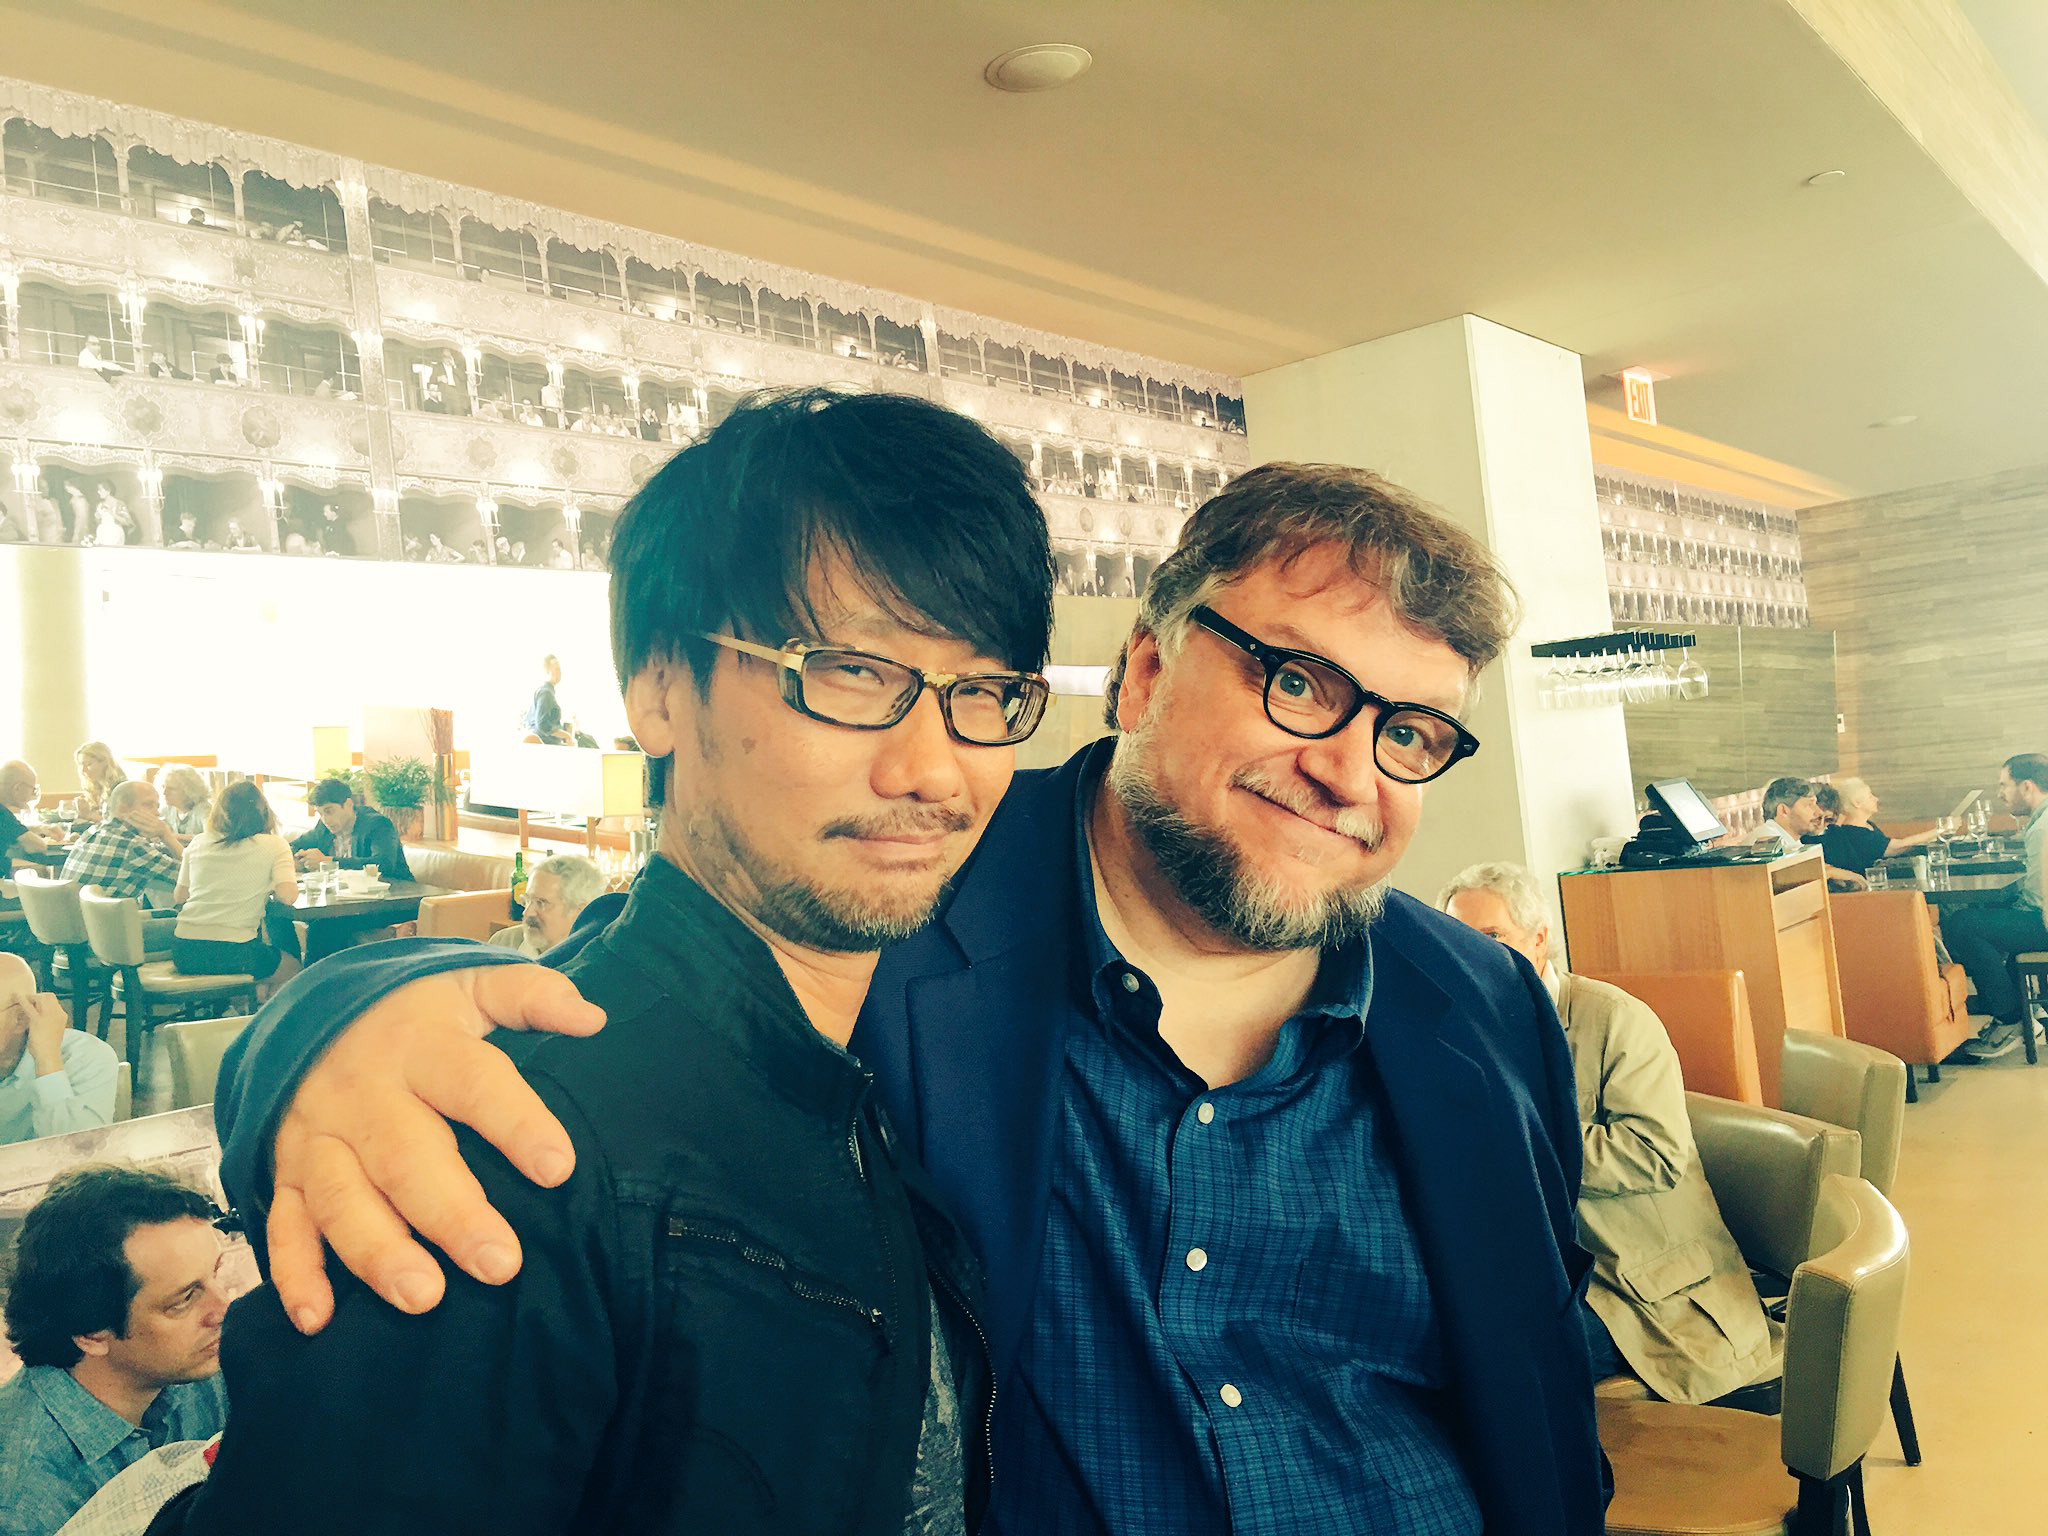 """Sneaked out to greet Guillermo del Toro."" - Ayako"